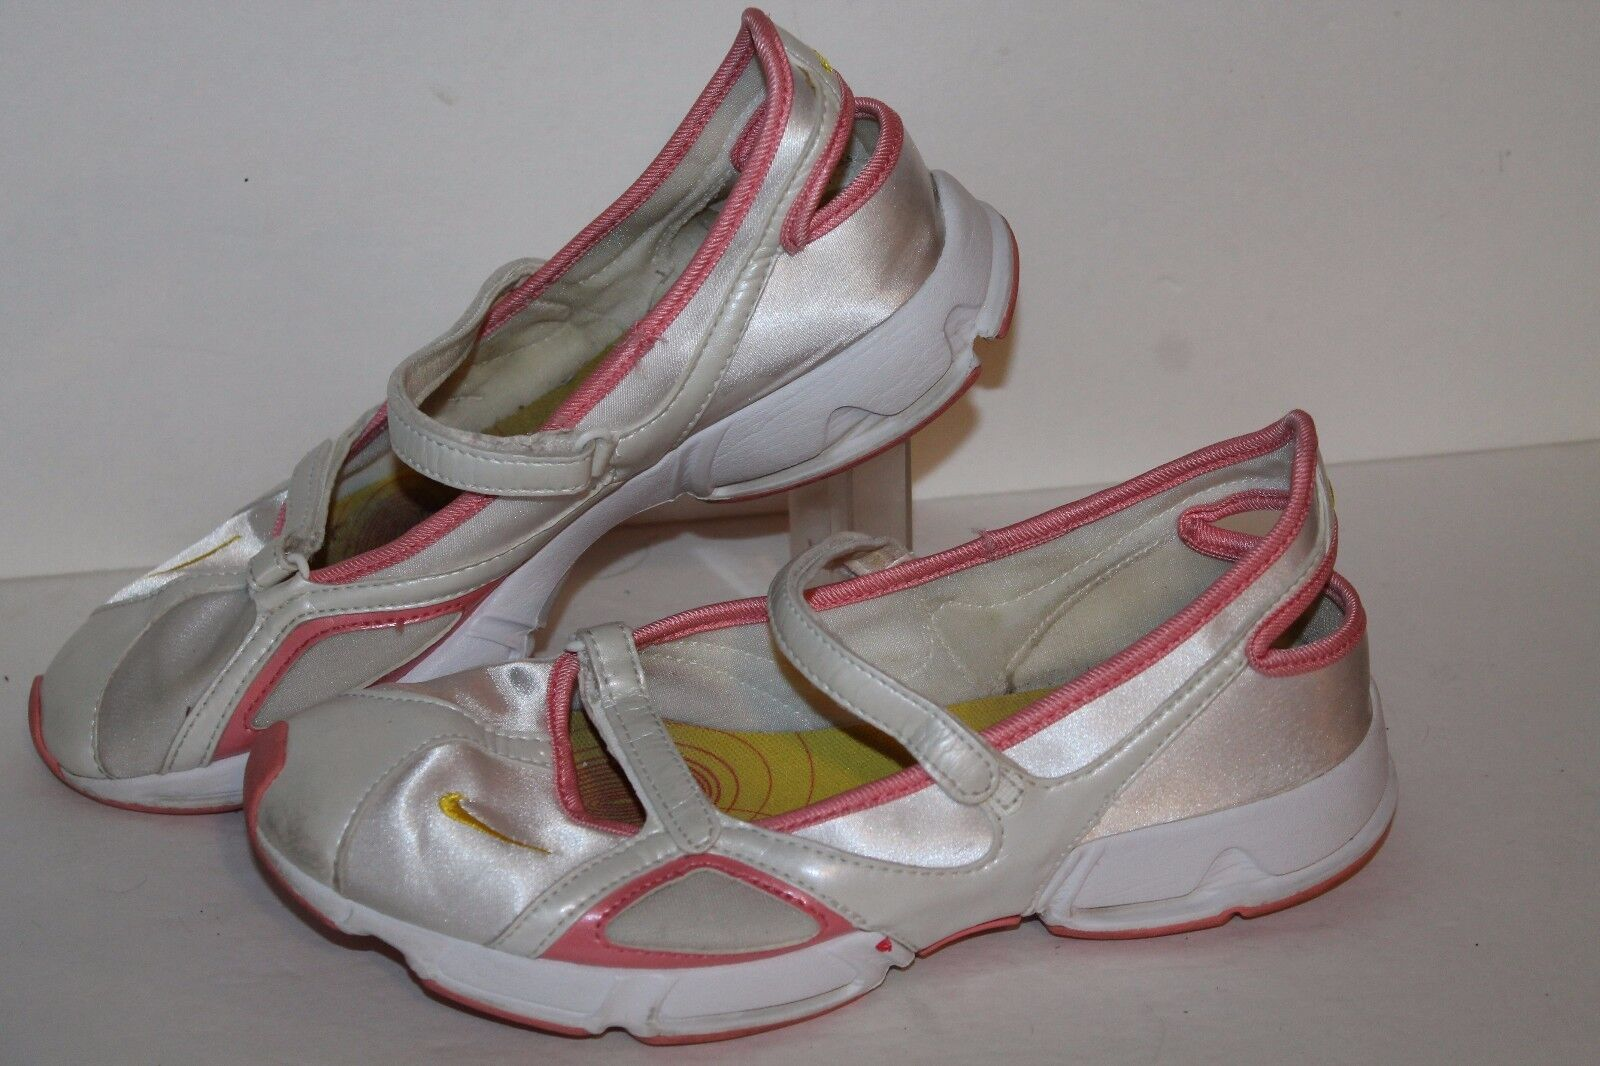 Nike MJ Casual Sneakers, White/Pink/Yellow, Womens US Comfortable Cheap and beautiful fashion